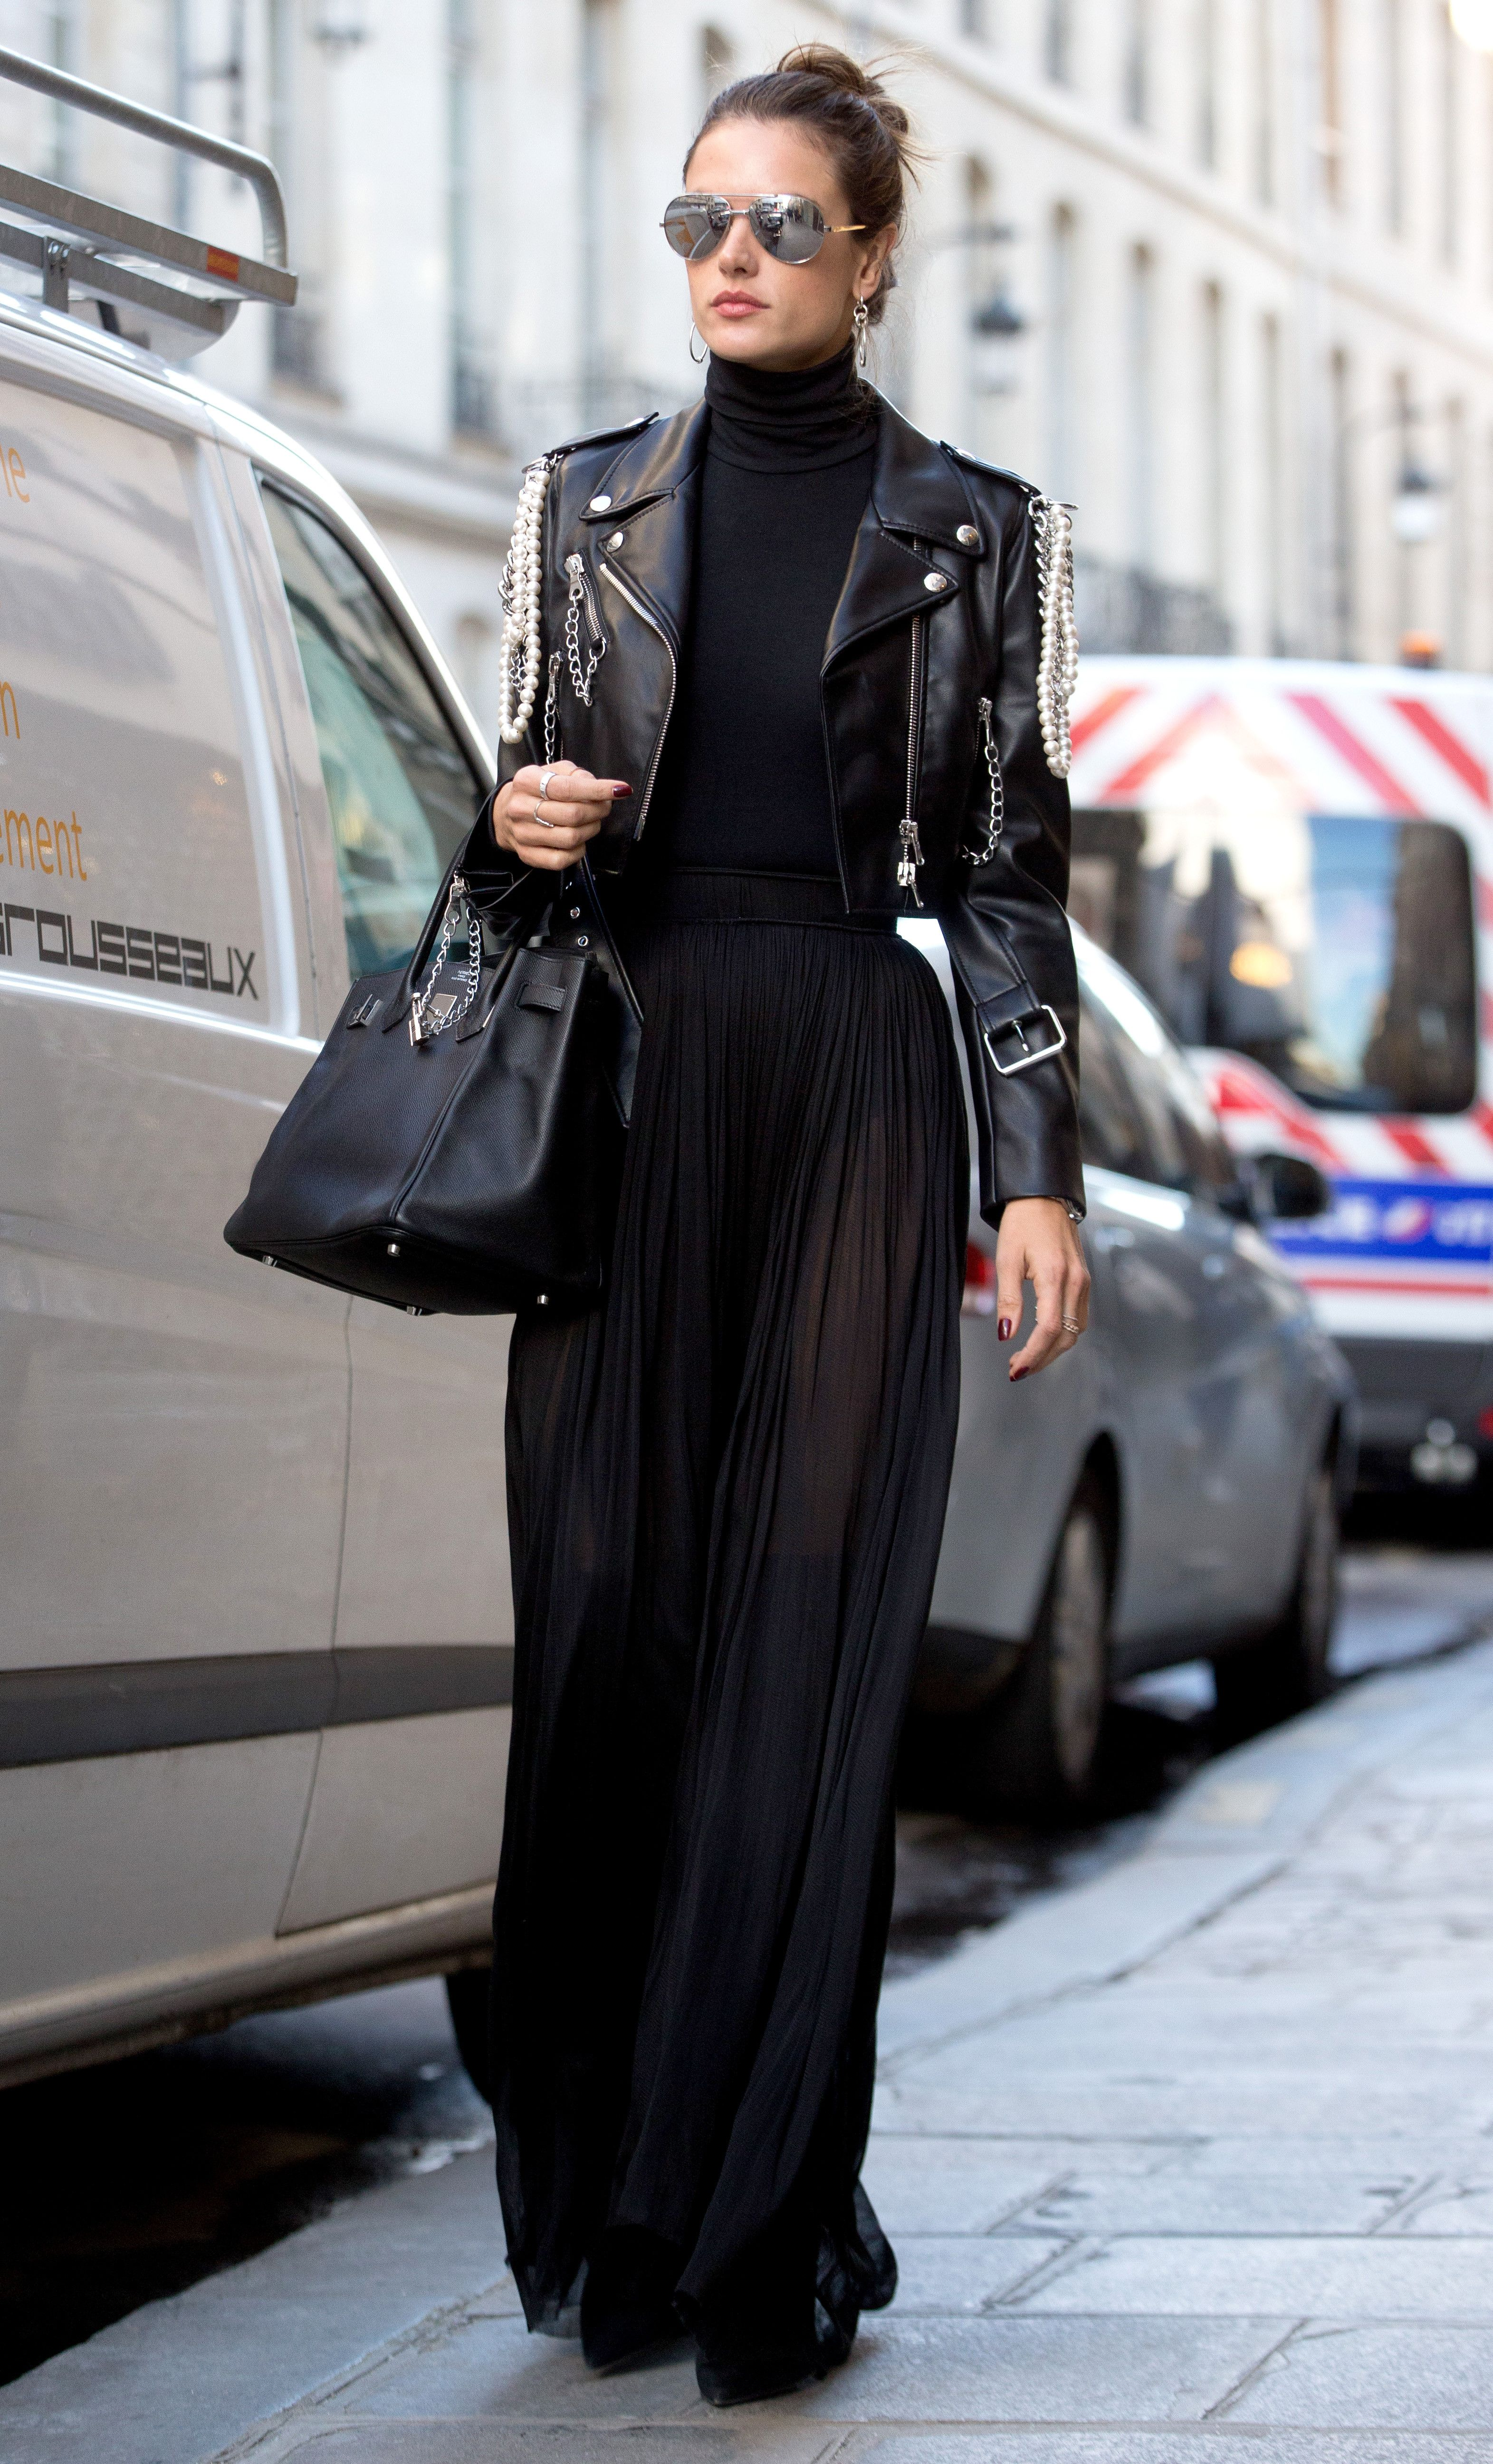 This is the coolest way to wear a maxi skirt in winter winter